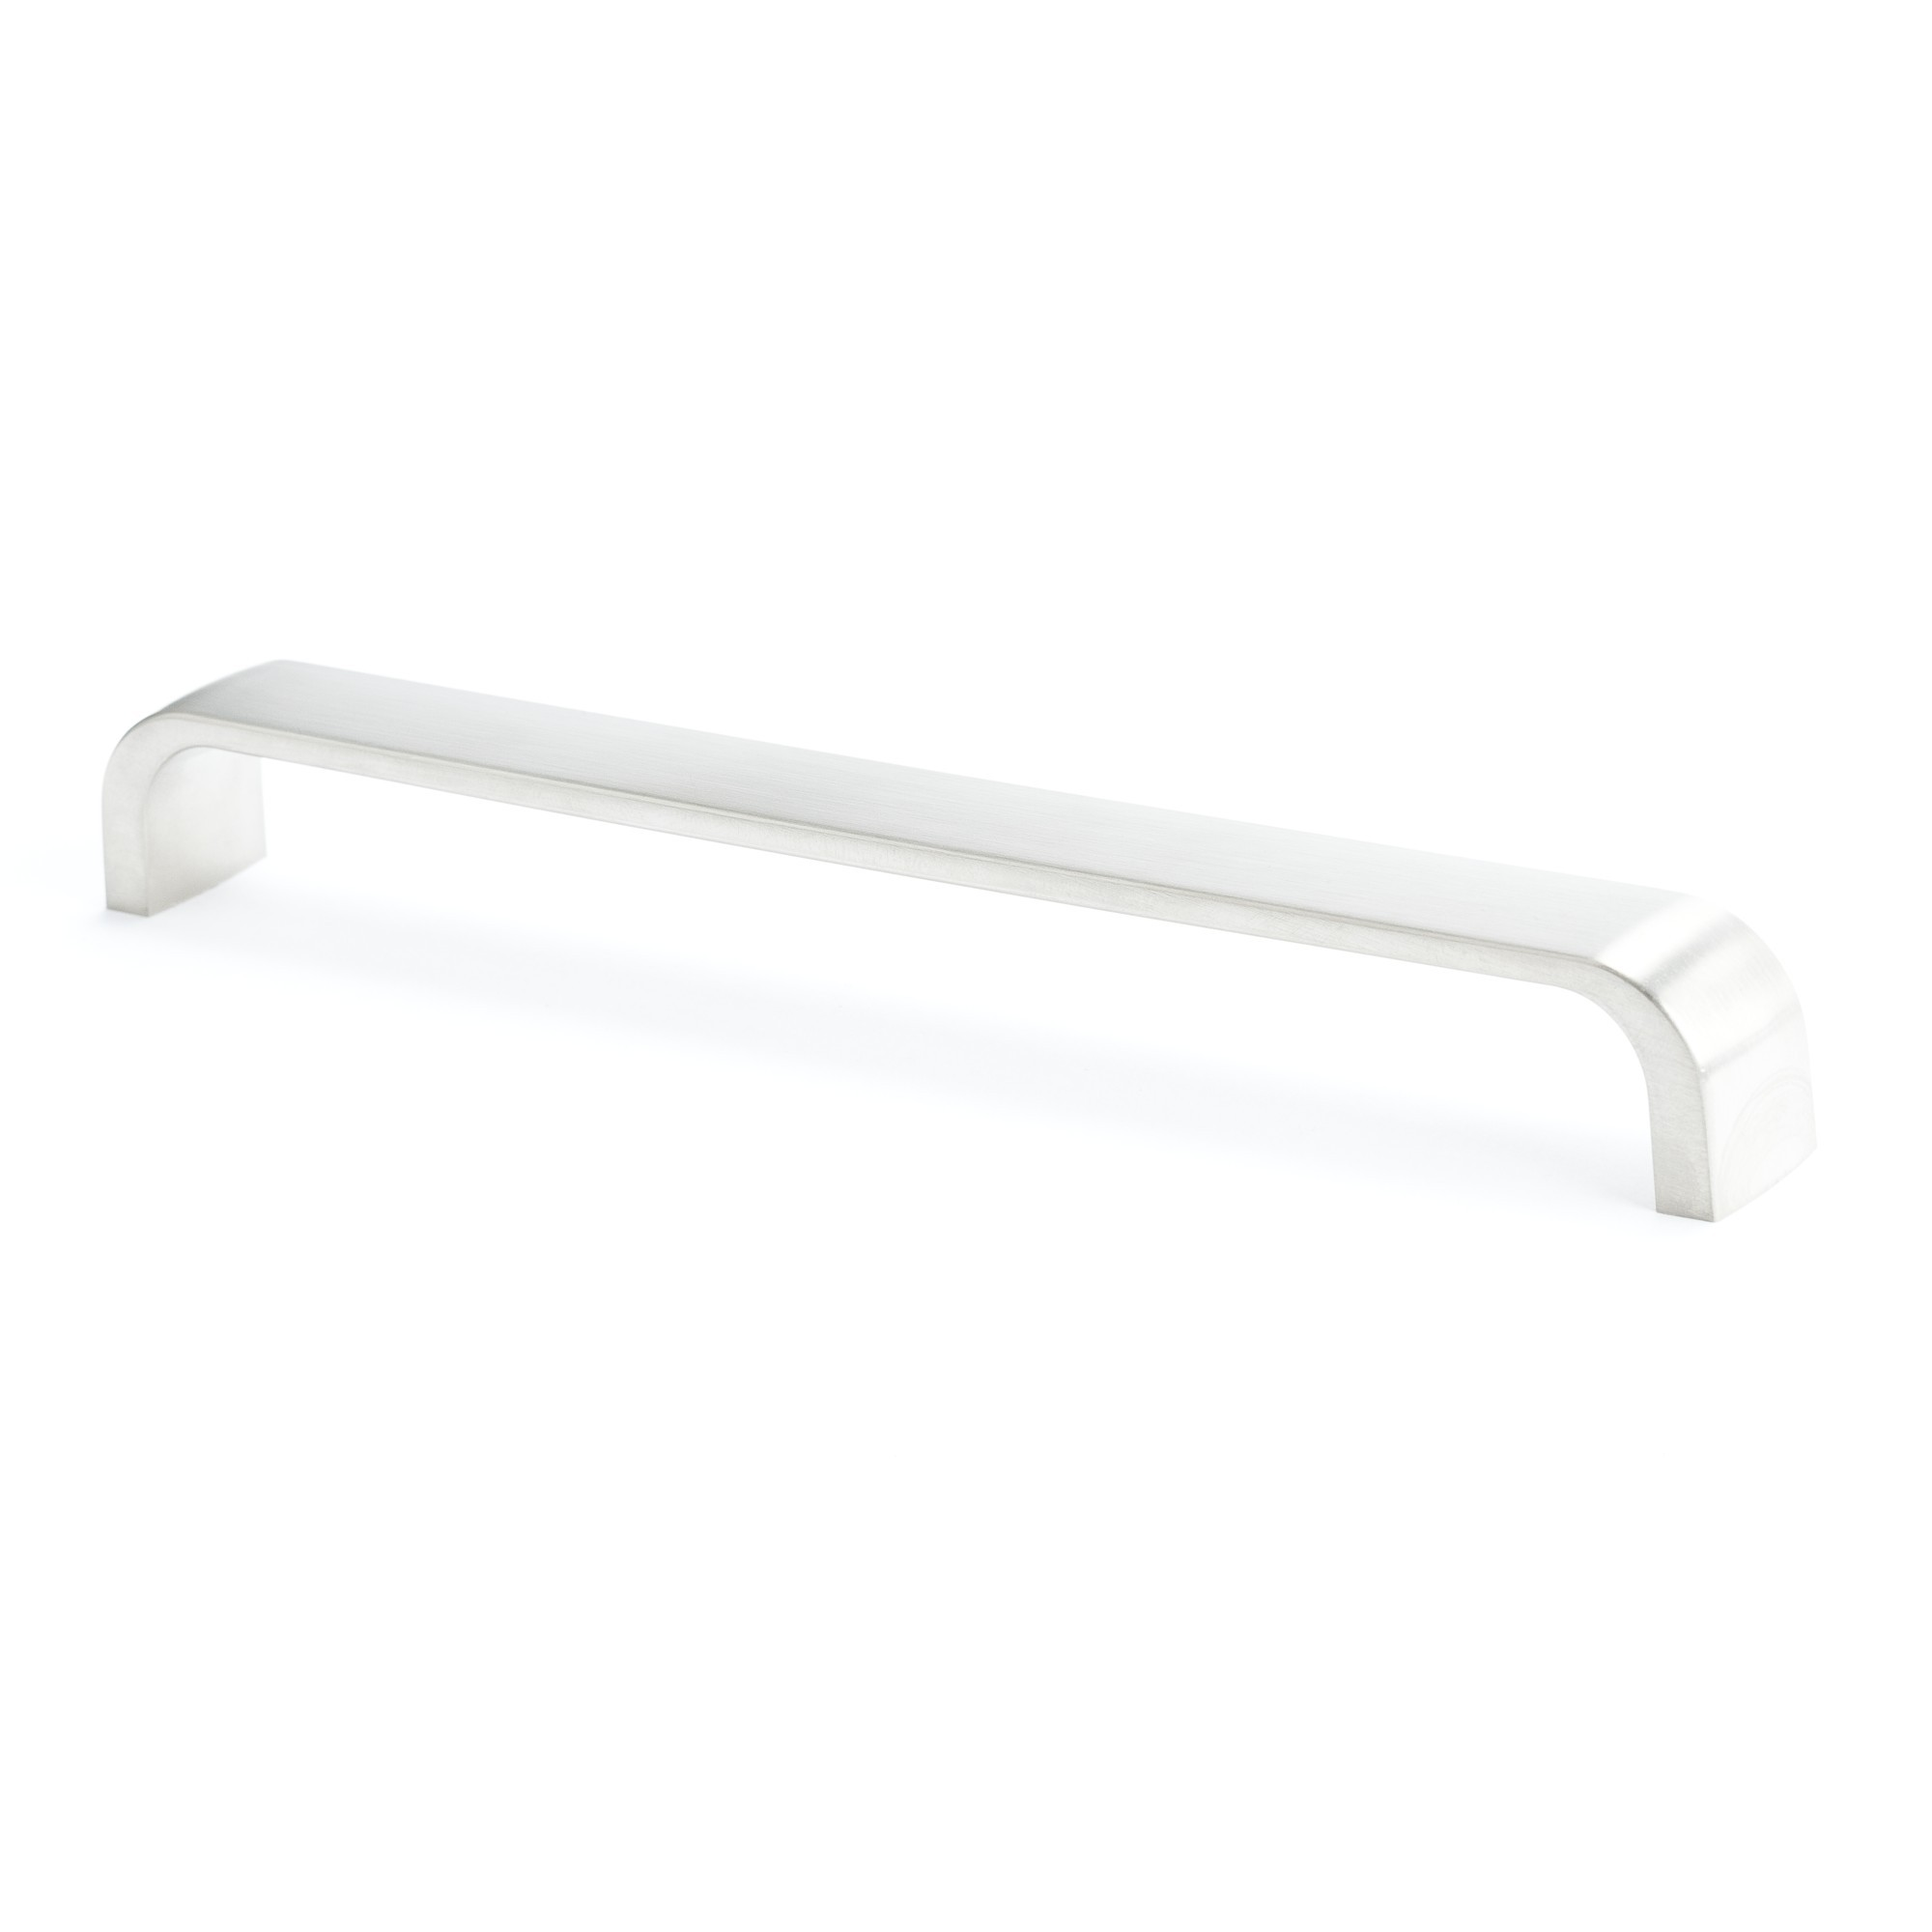 Flat Bar Pull (Brushed Nickel) - 192mm